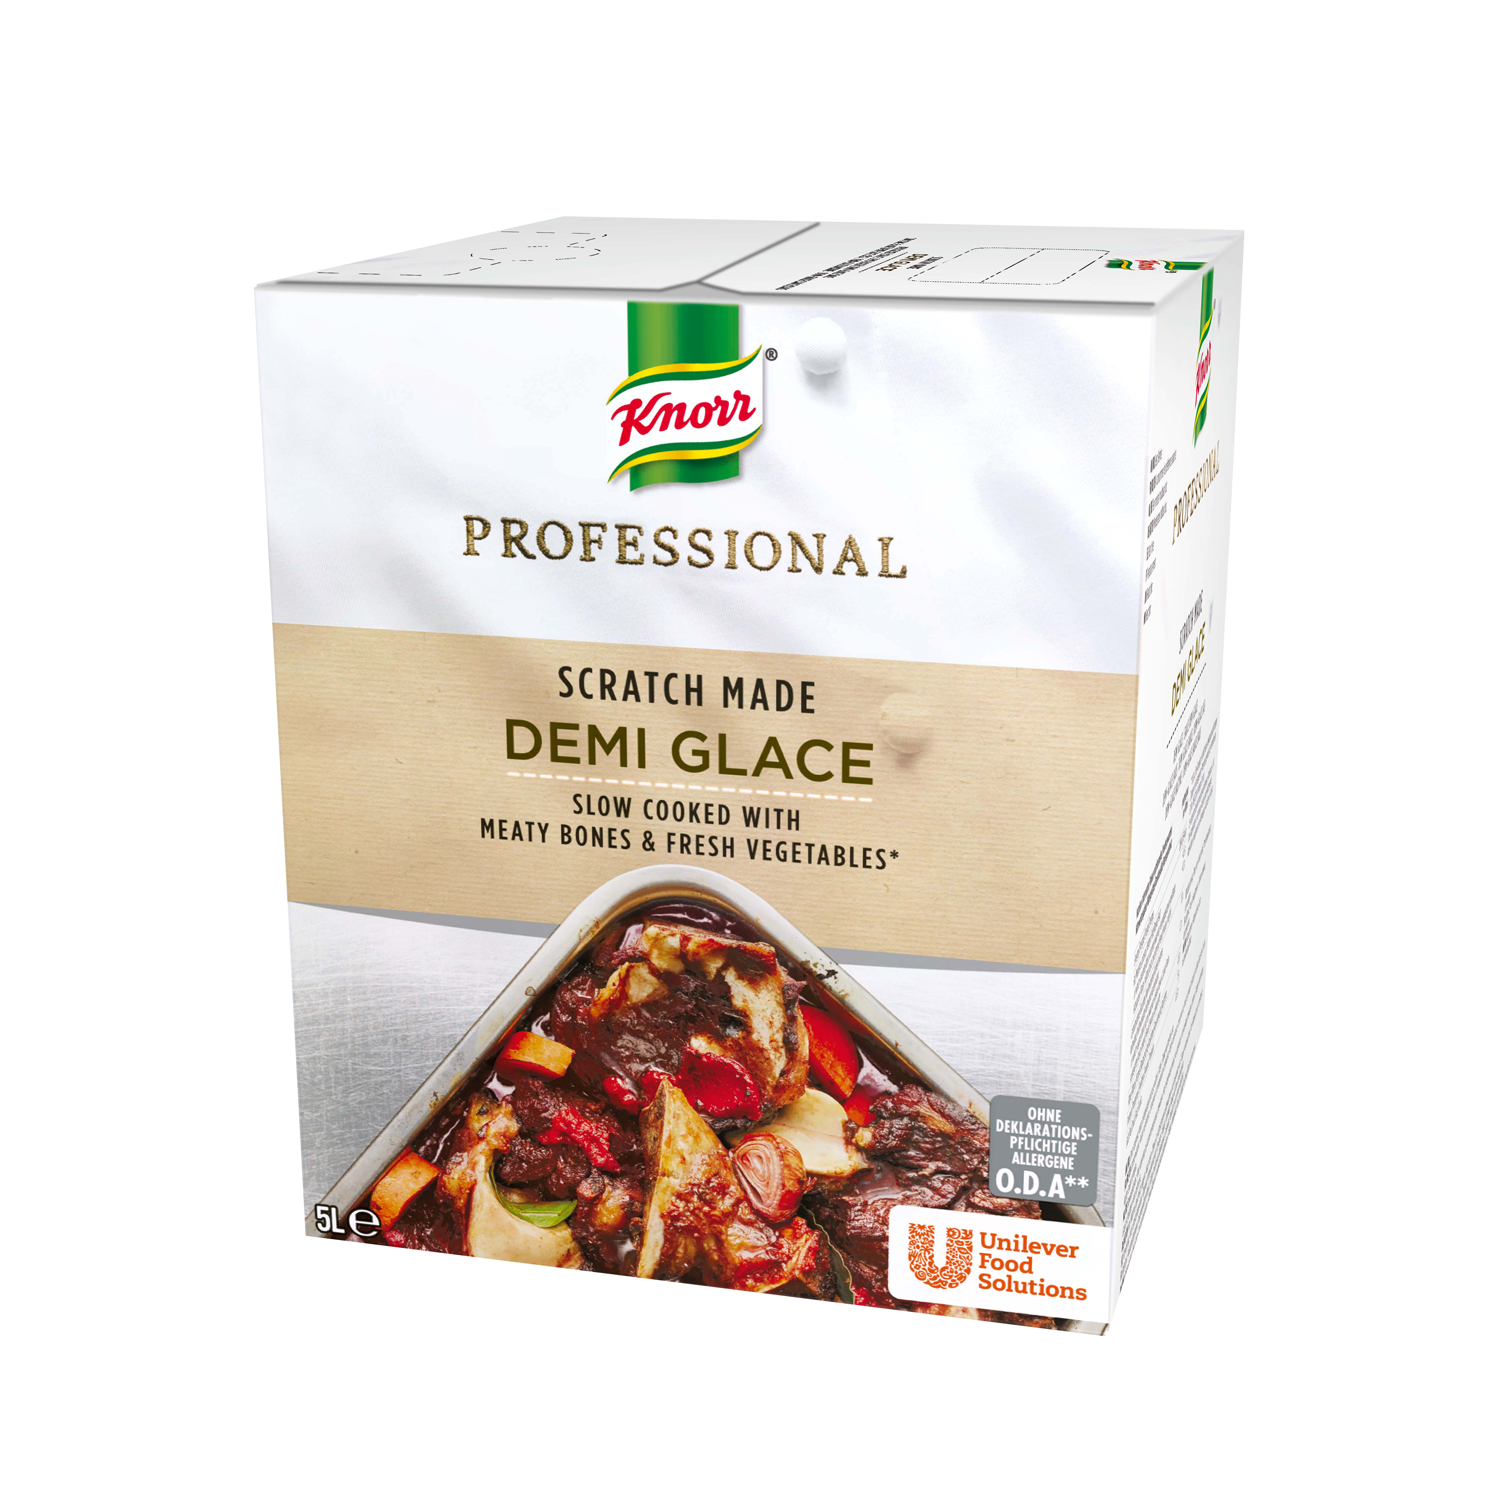 Knorr Professional Demi-Glace 5L